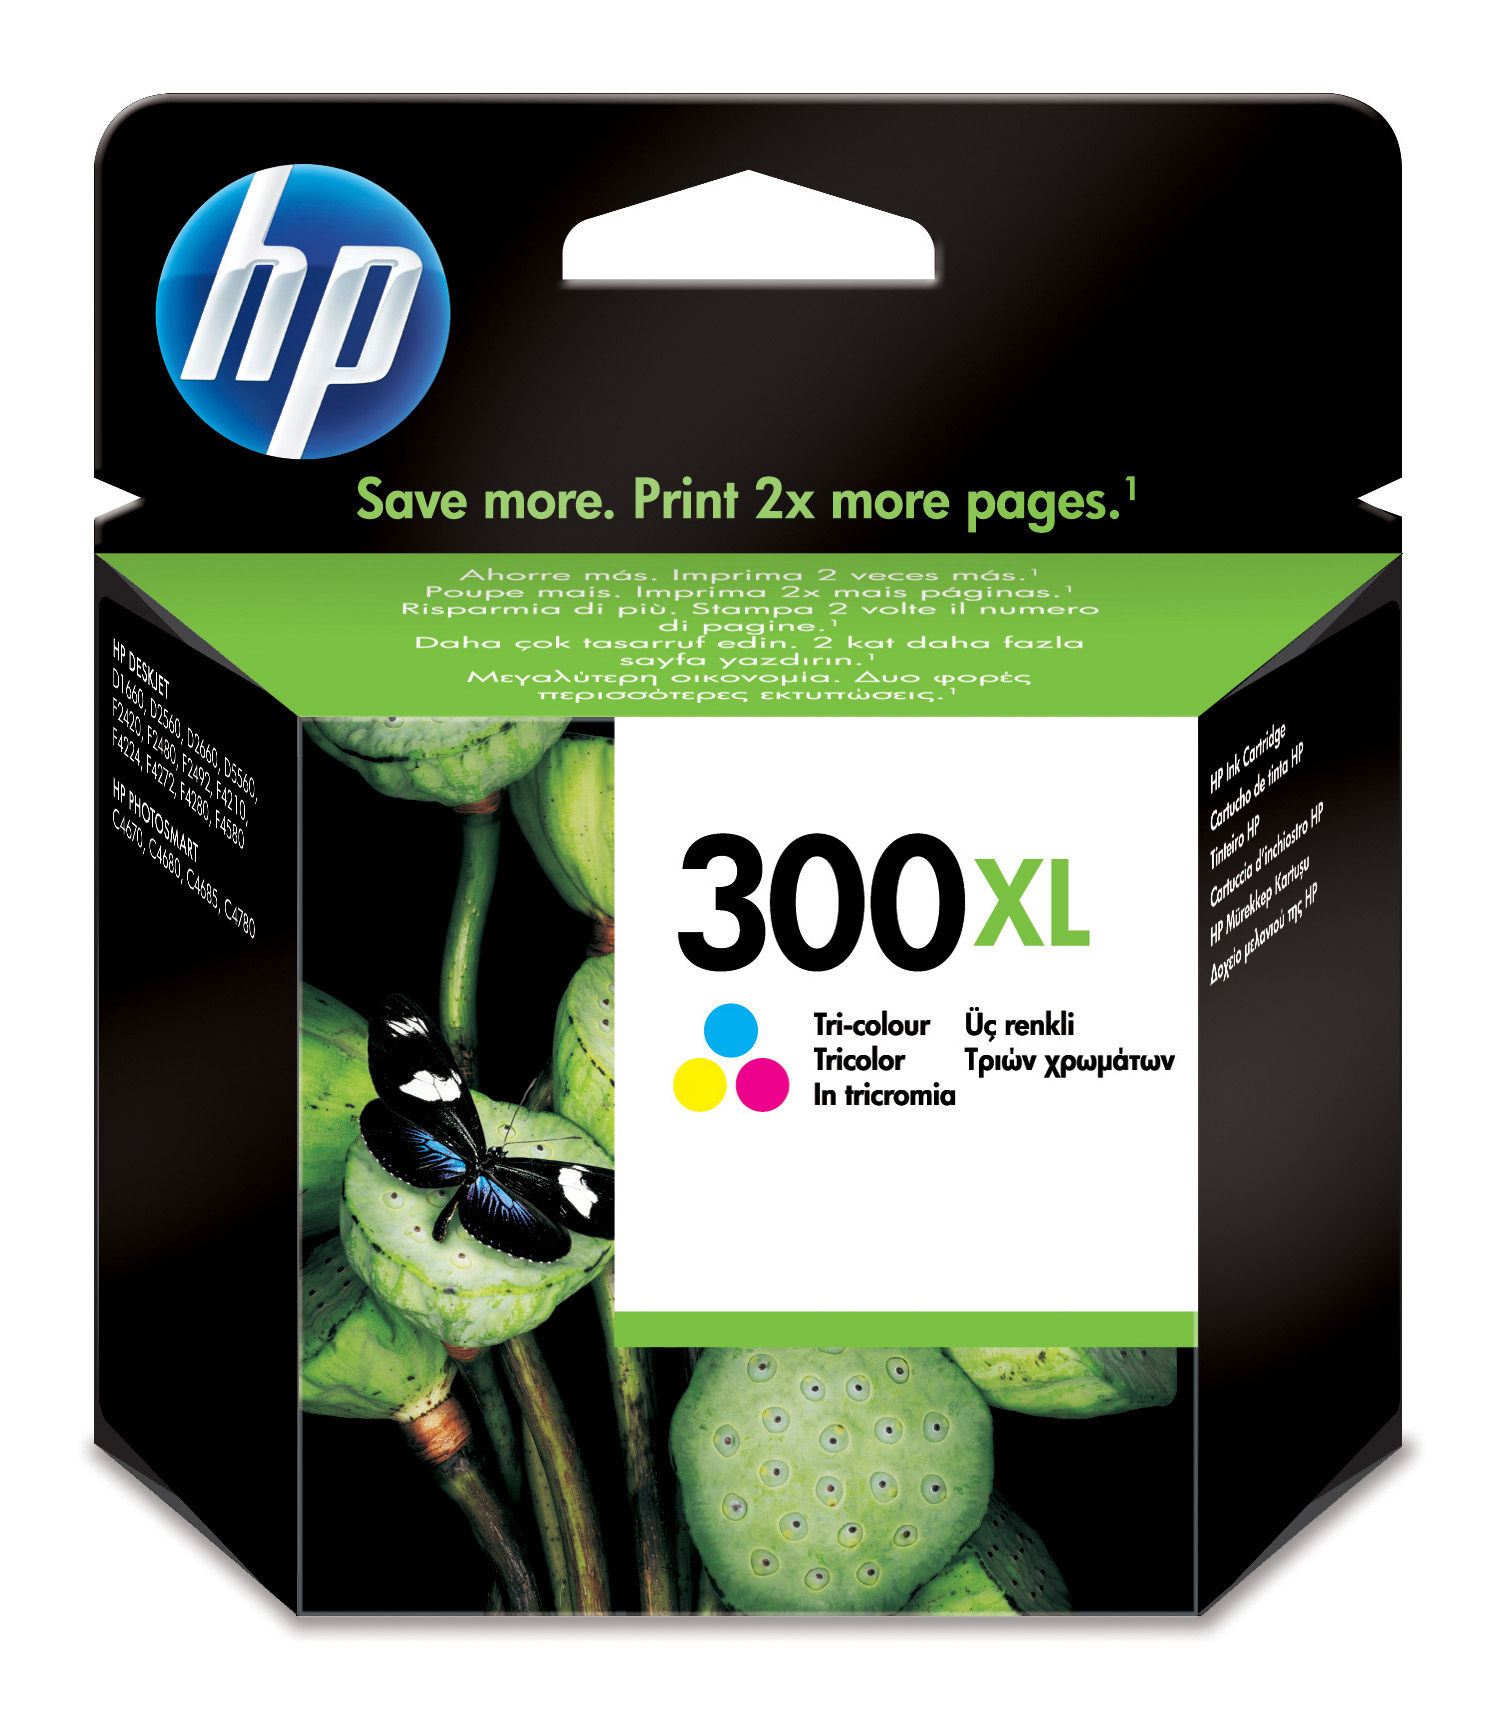 Hp - Inkjet Supply (pl1n) Mvs    Ink Cartridge No 300xl              Tricolour                        In Cc644ee#uus